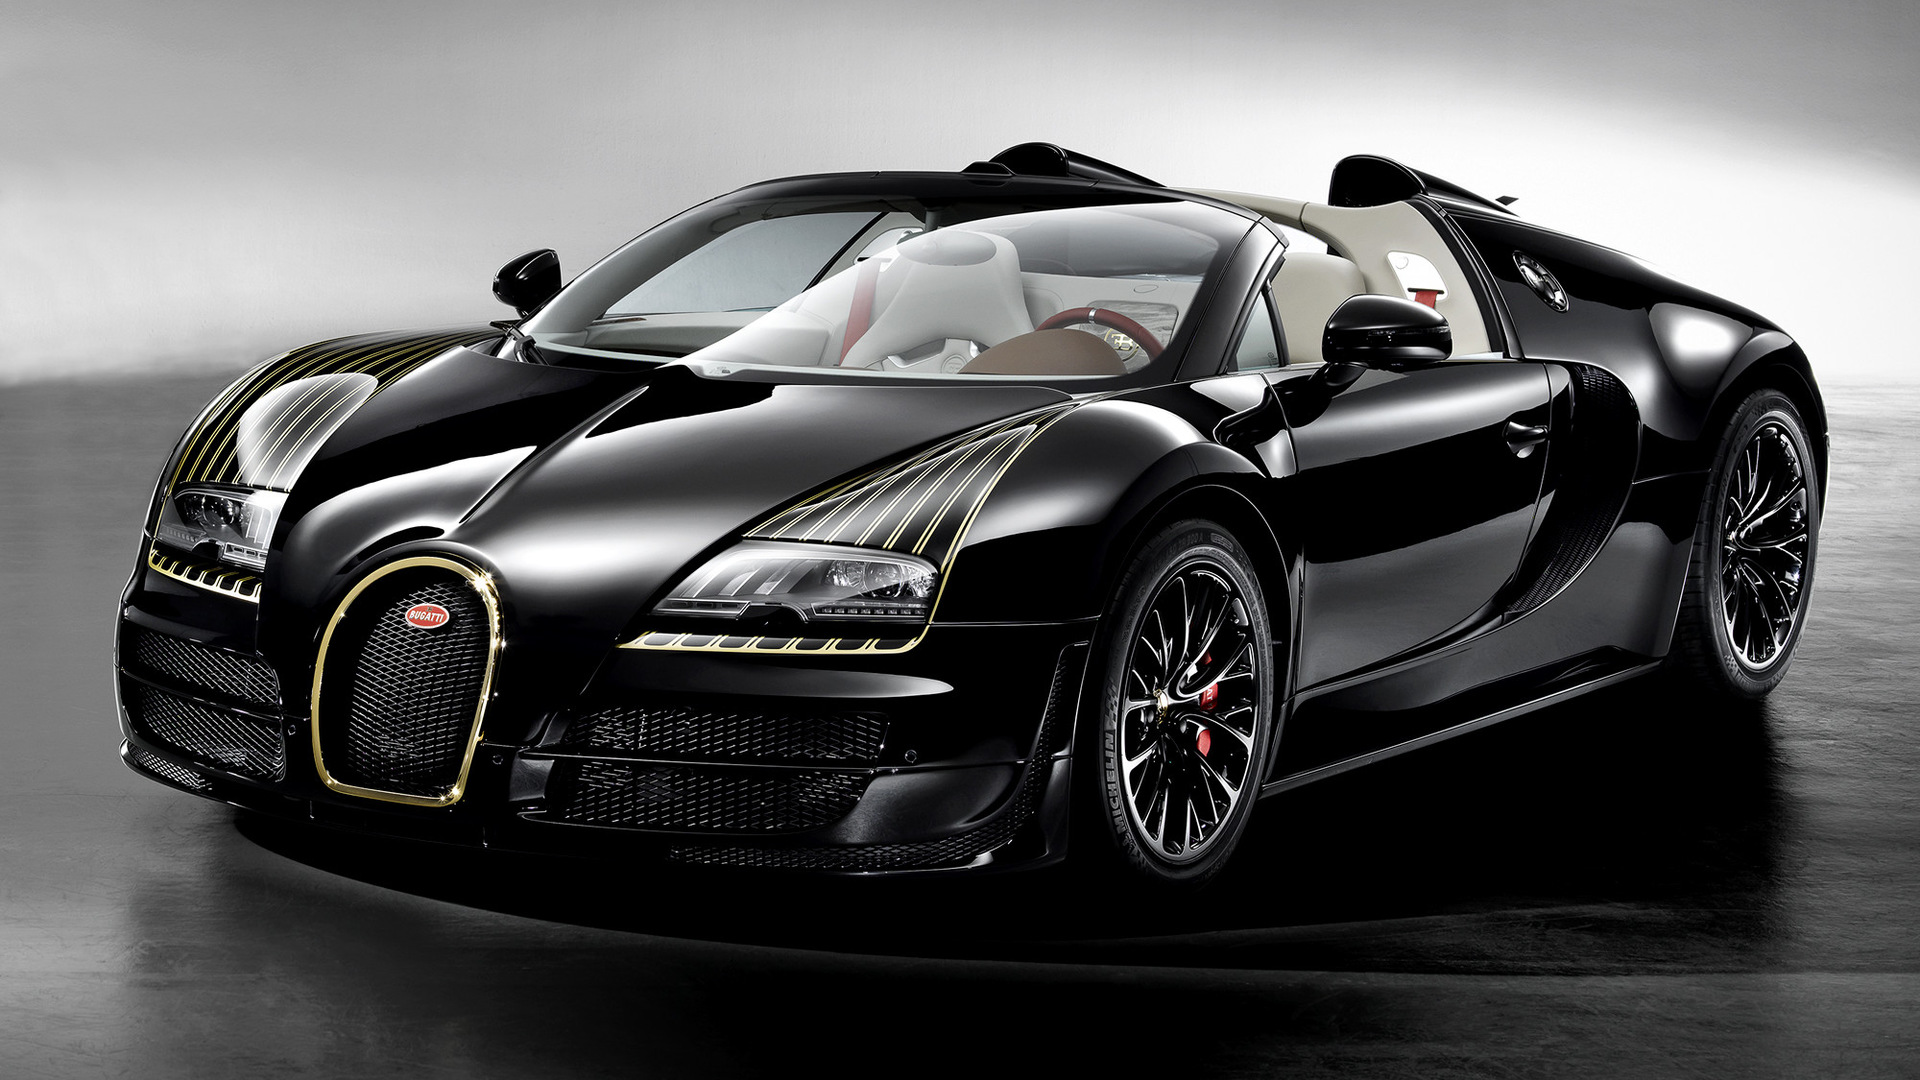 bugatti veyron grand sport vitesse black bess (2014) wallpapers and